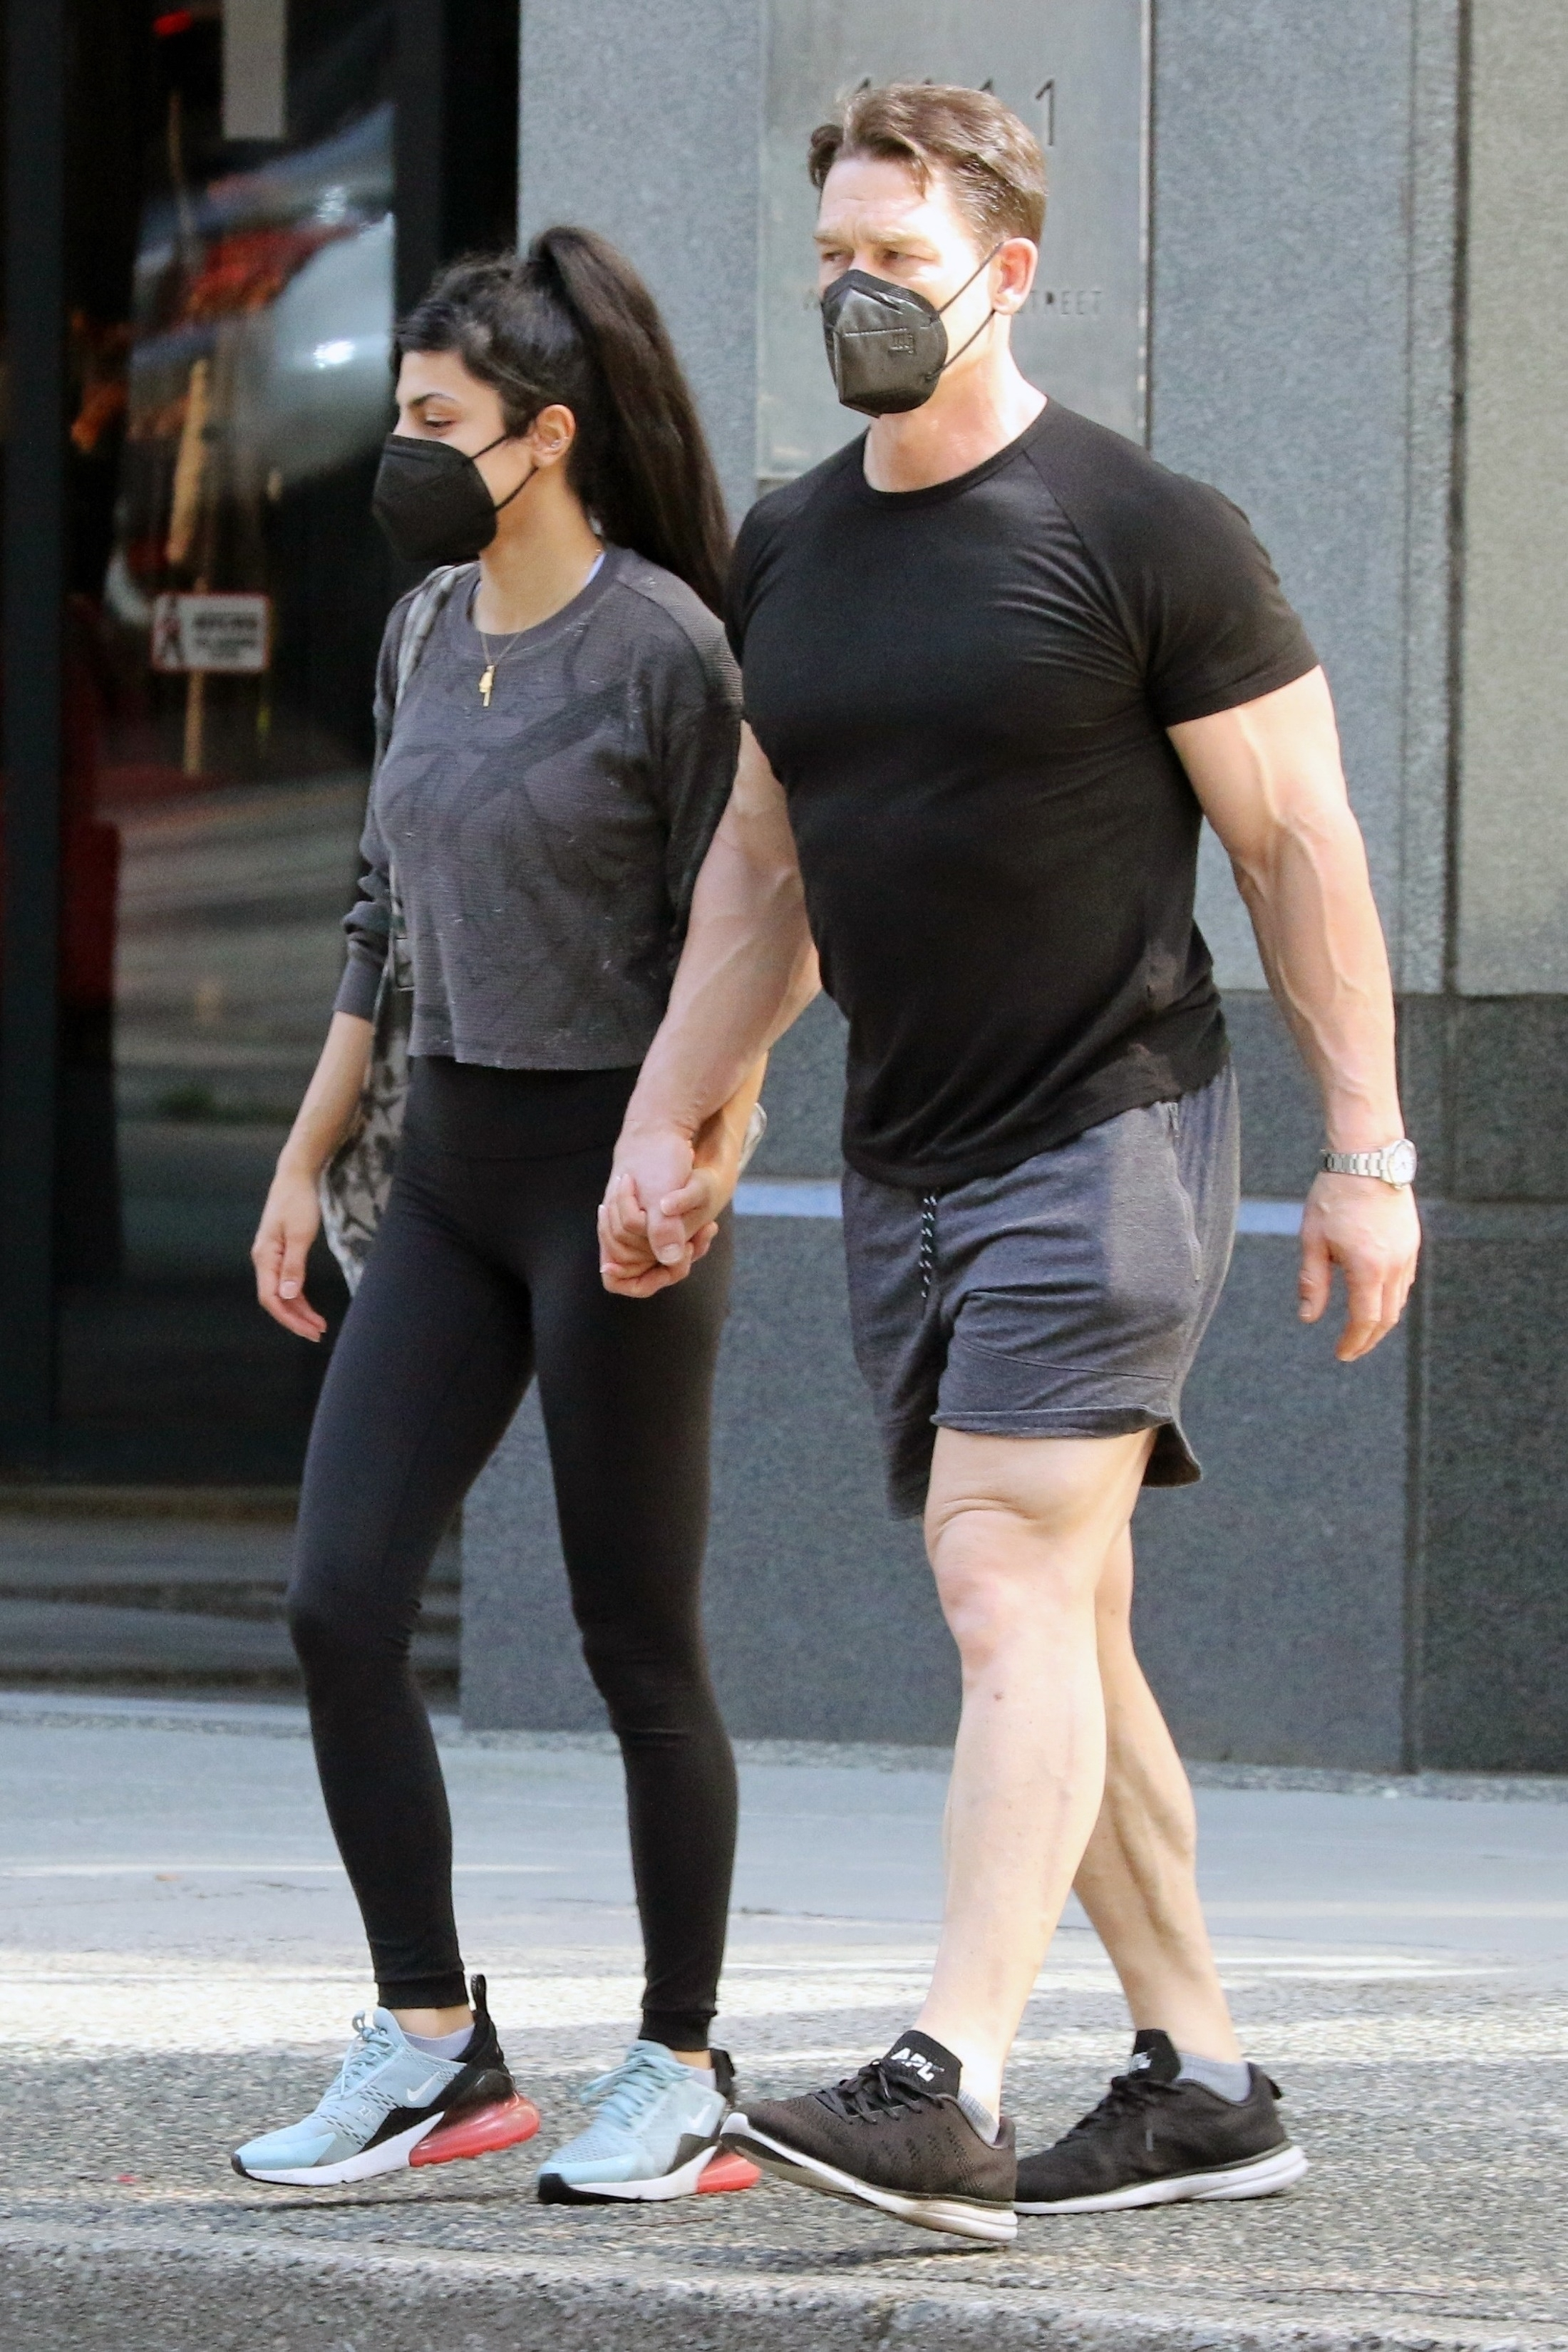 John Cena and his wife Shay Shariatzadeh